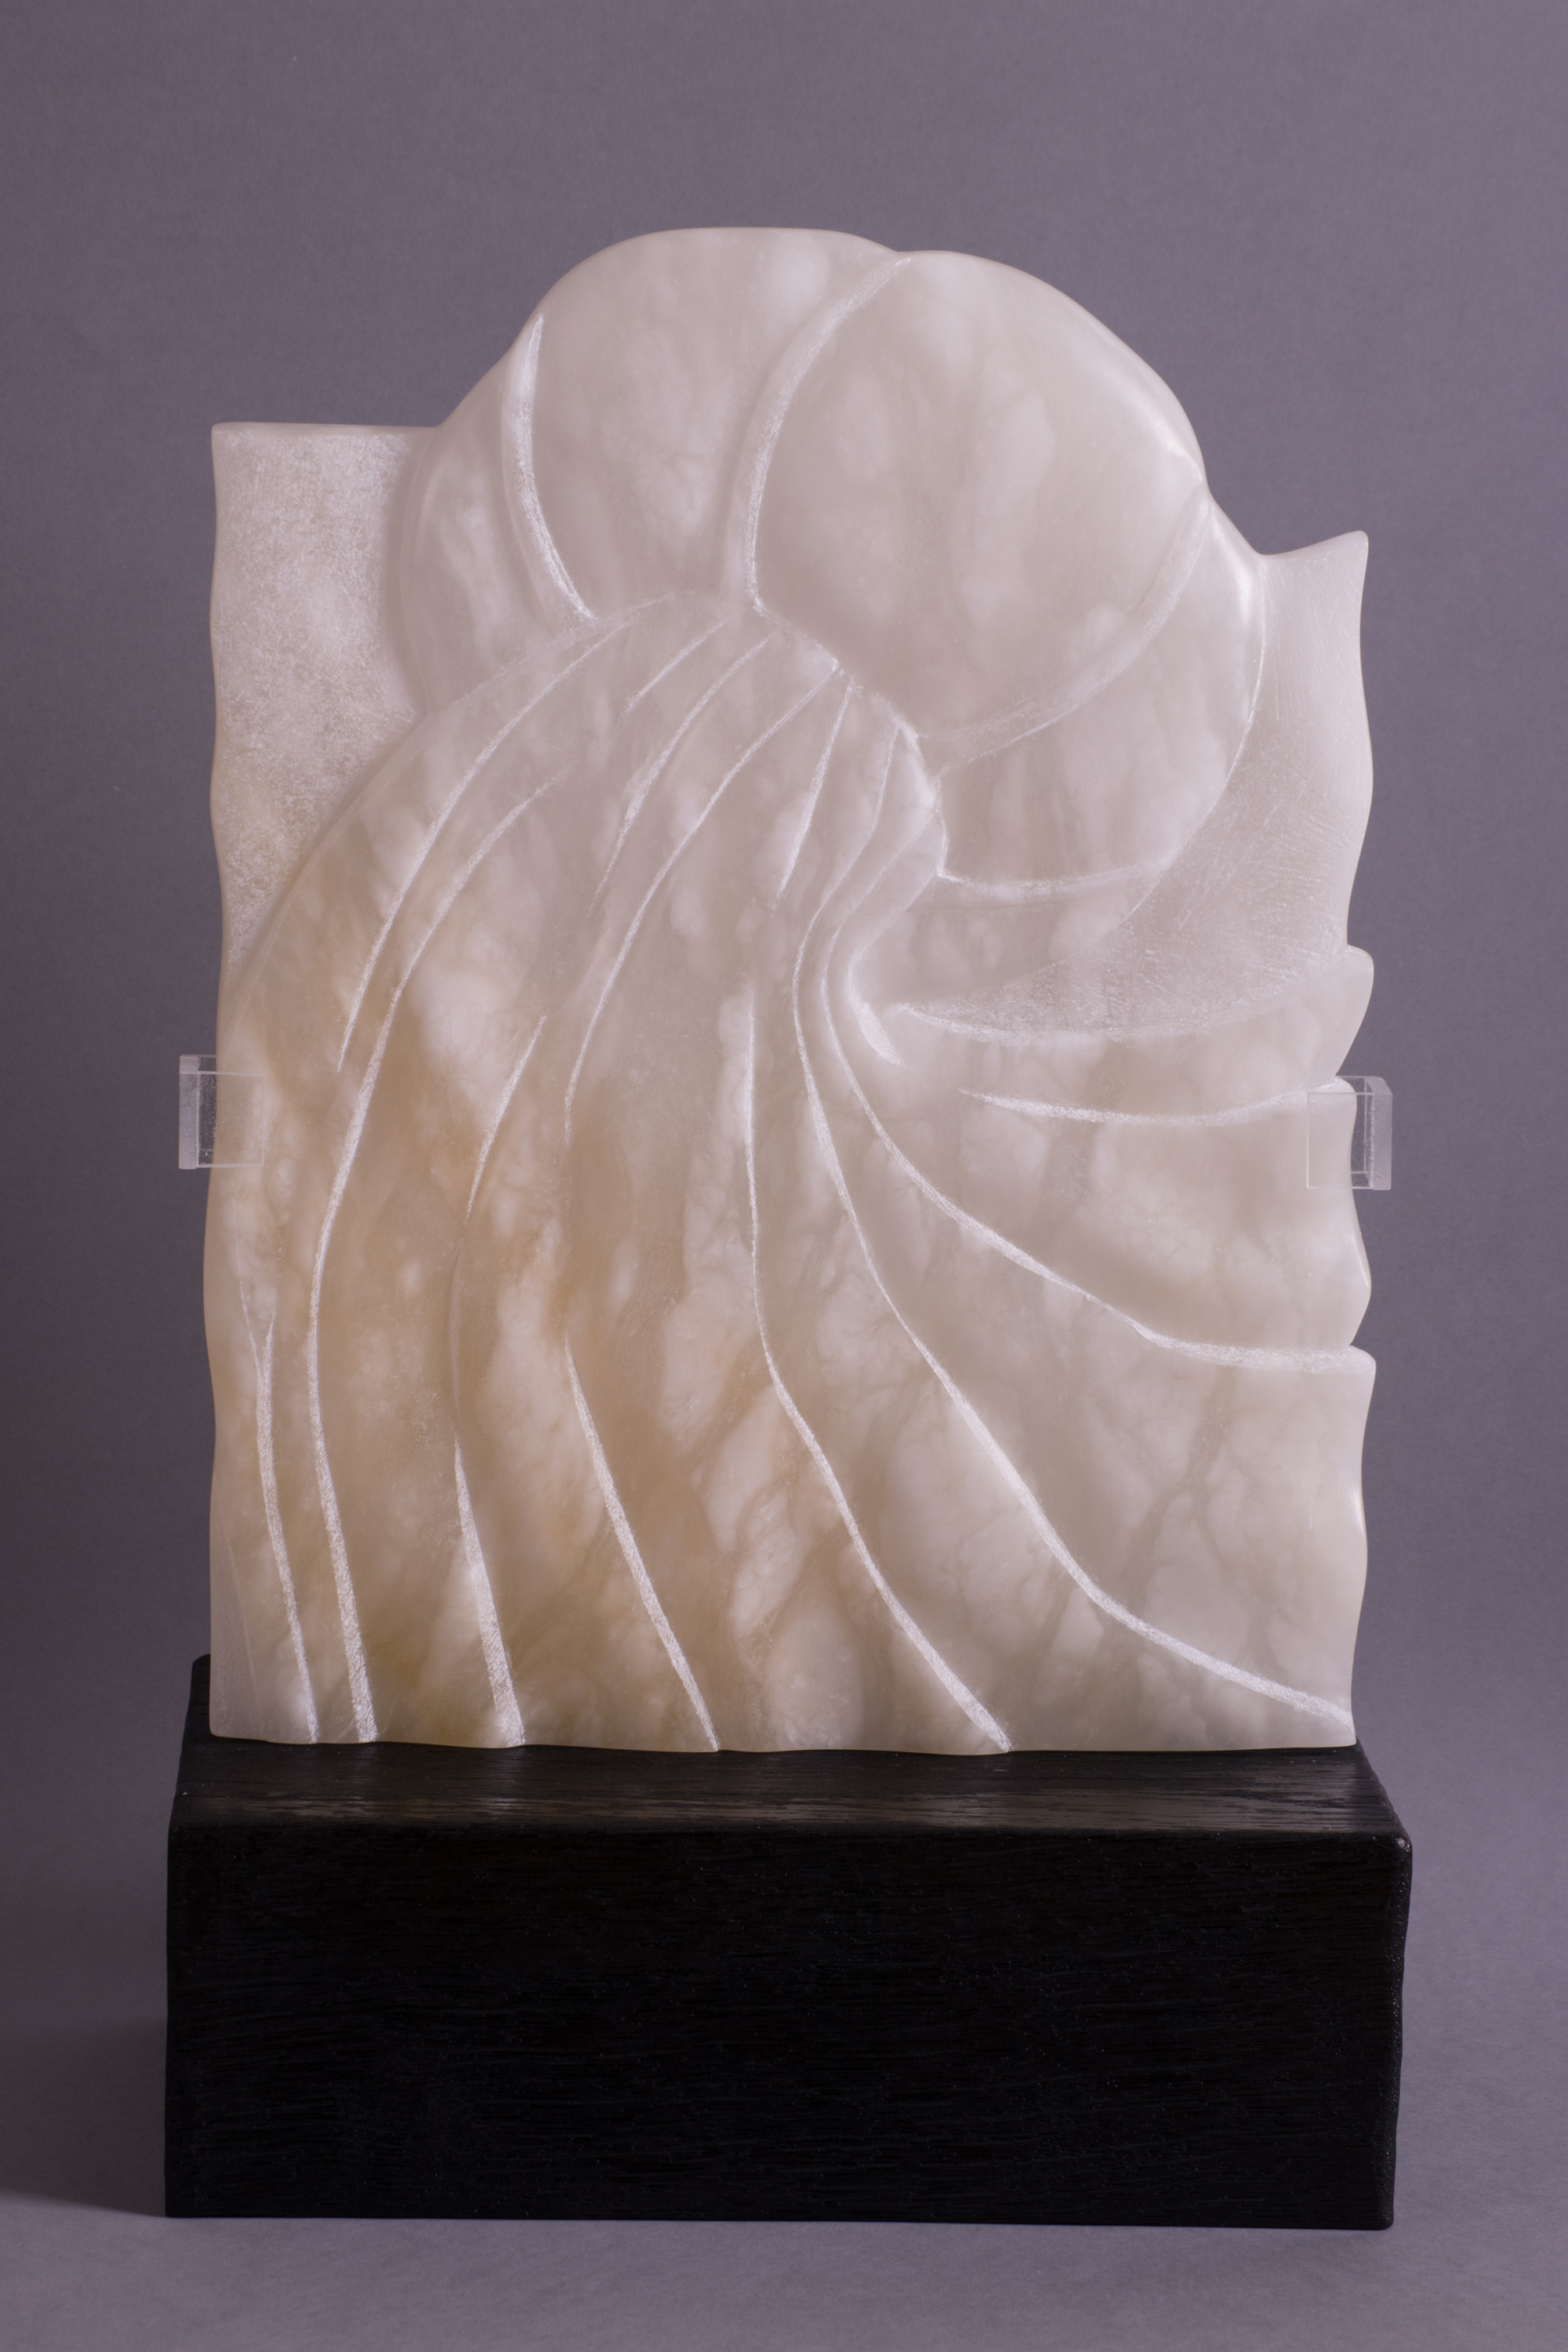 "'""Into the Sweet Night"" - Alabaster and charred wood plinth' by artist Ann Coomber"